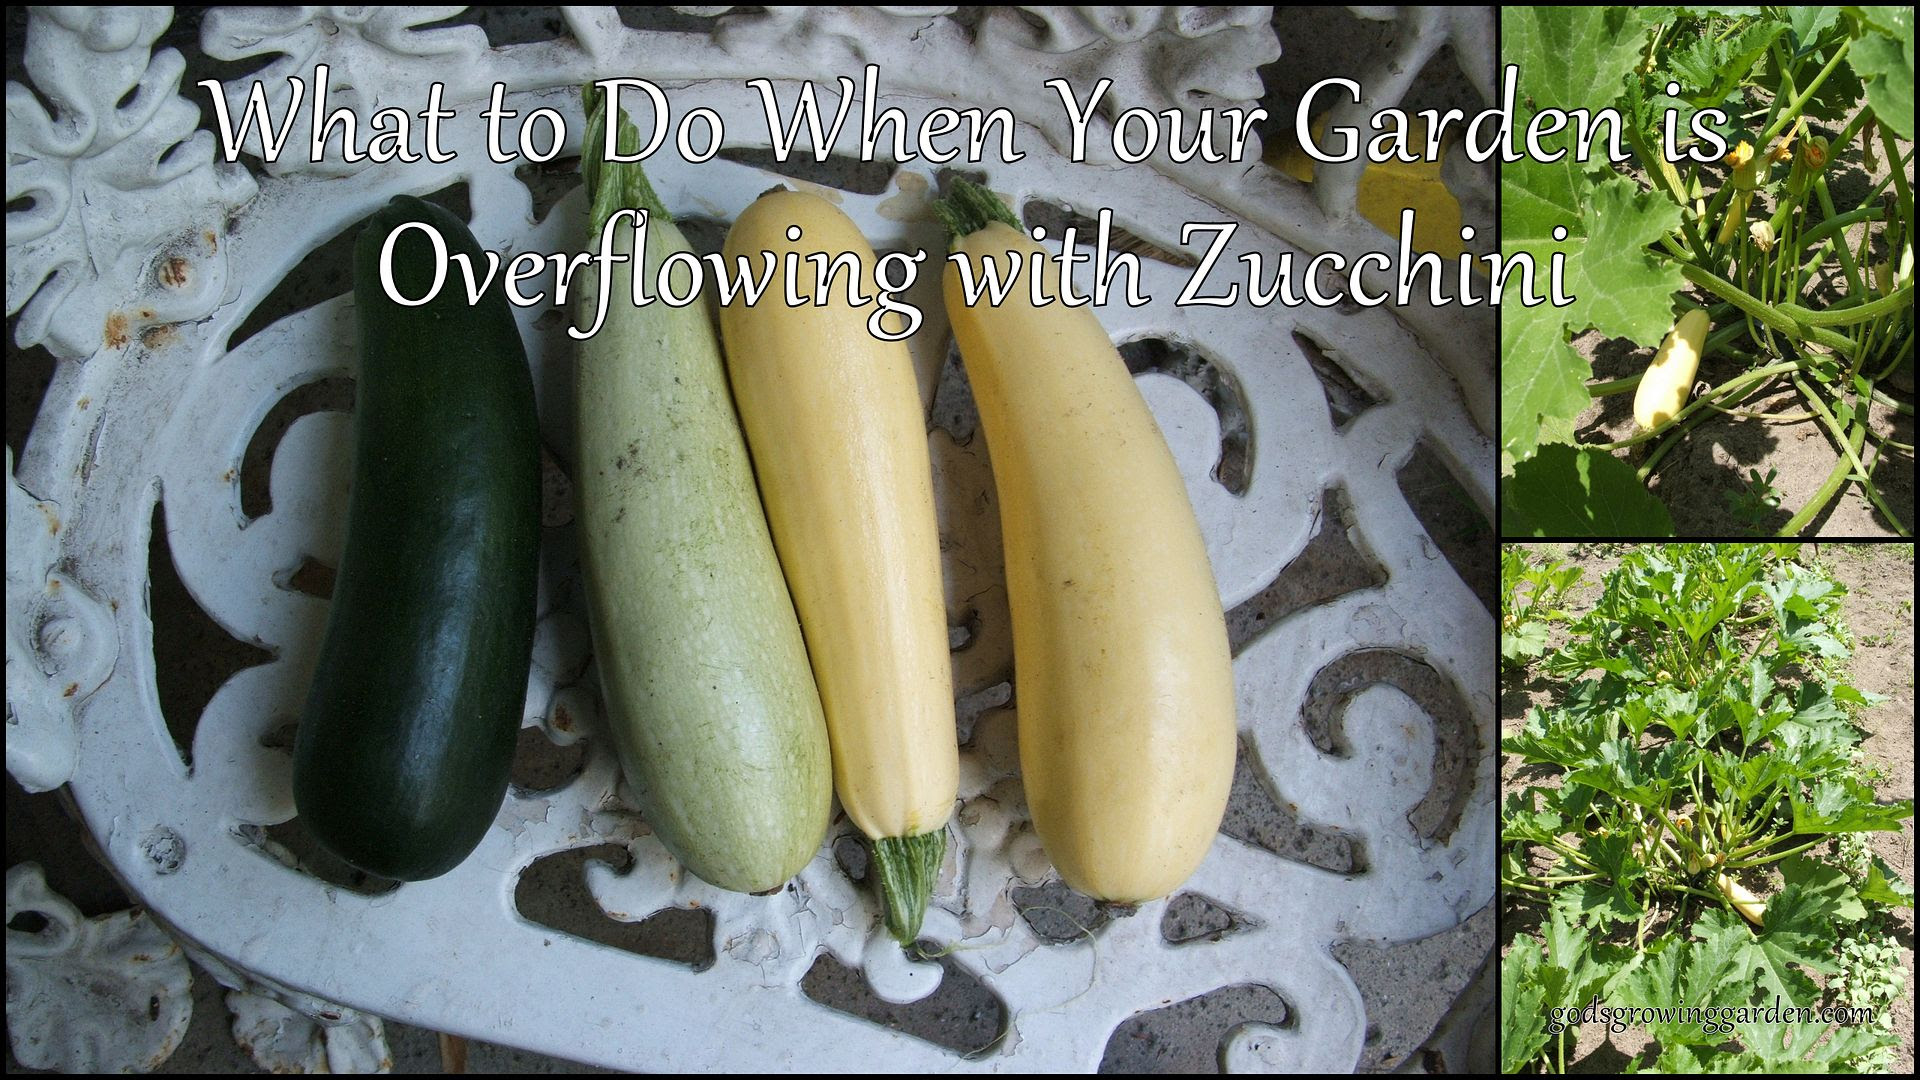 by Angie Ouellette-Tower for http://www.godsgrowinggarden.com/ photo 2012-08-02_zpsgmzdryrt.jpg